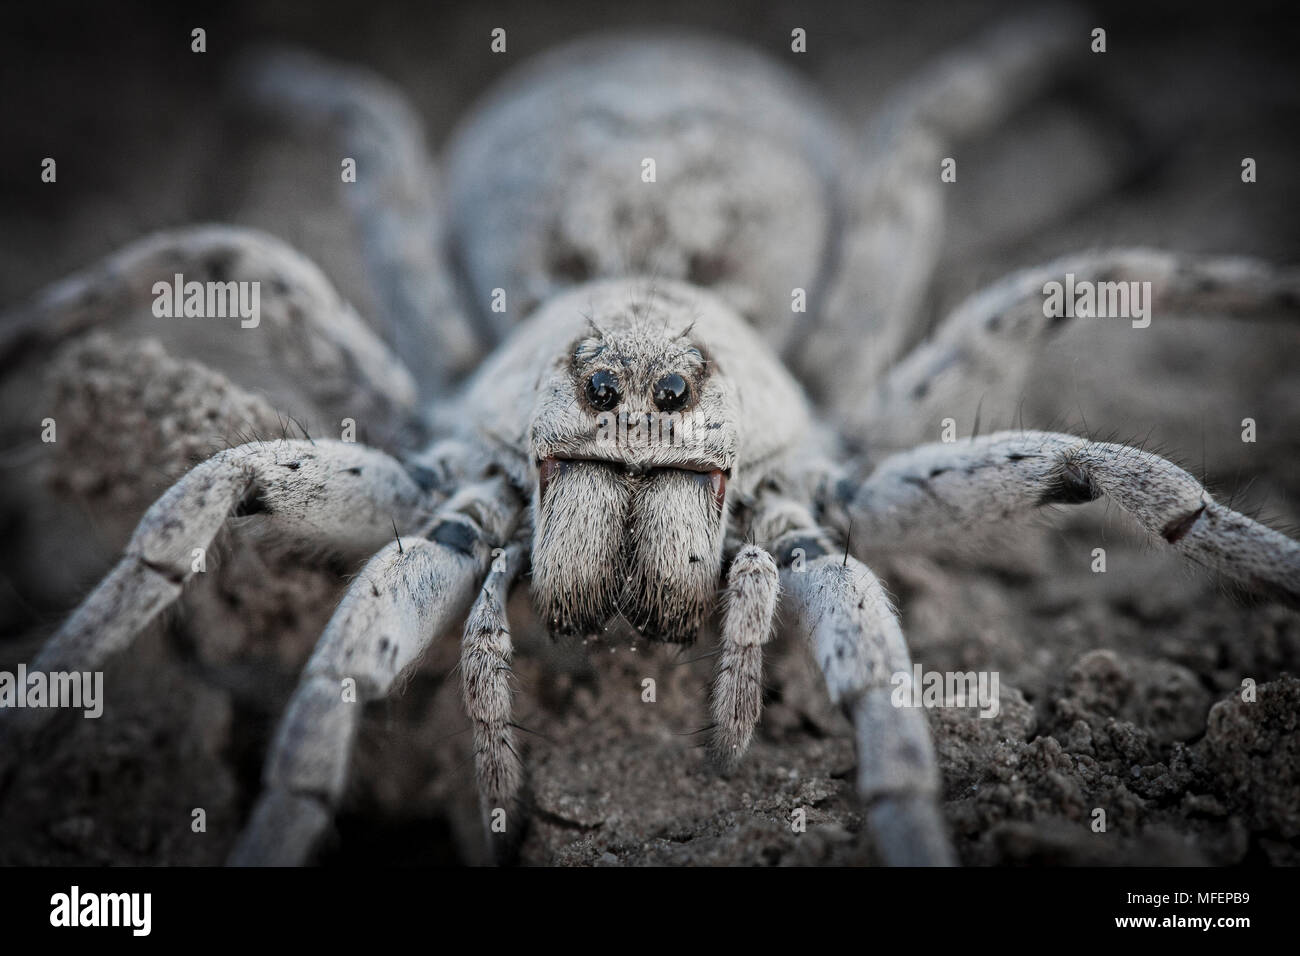 Desert Wolfspider (Lycosa spp.), Fam. Lycosidae, These large spiders are active during the night, Kinchega National Park, New South Wales, Australia - Stock Image